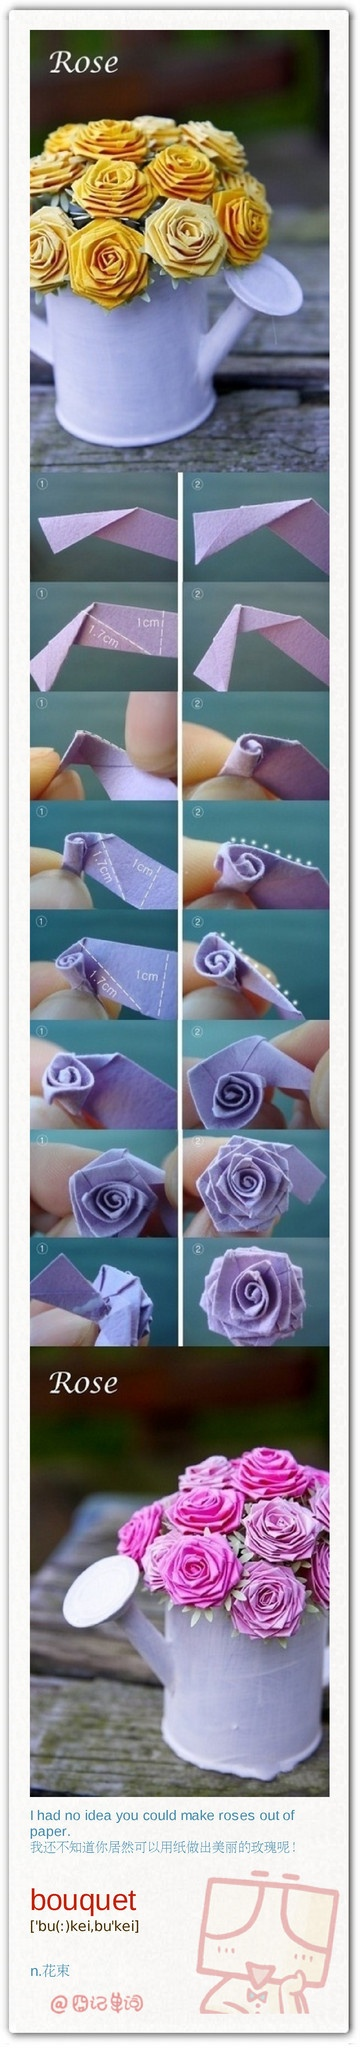 Paper roses! My friend from China used to make these for me all the time :)